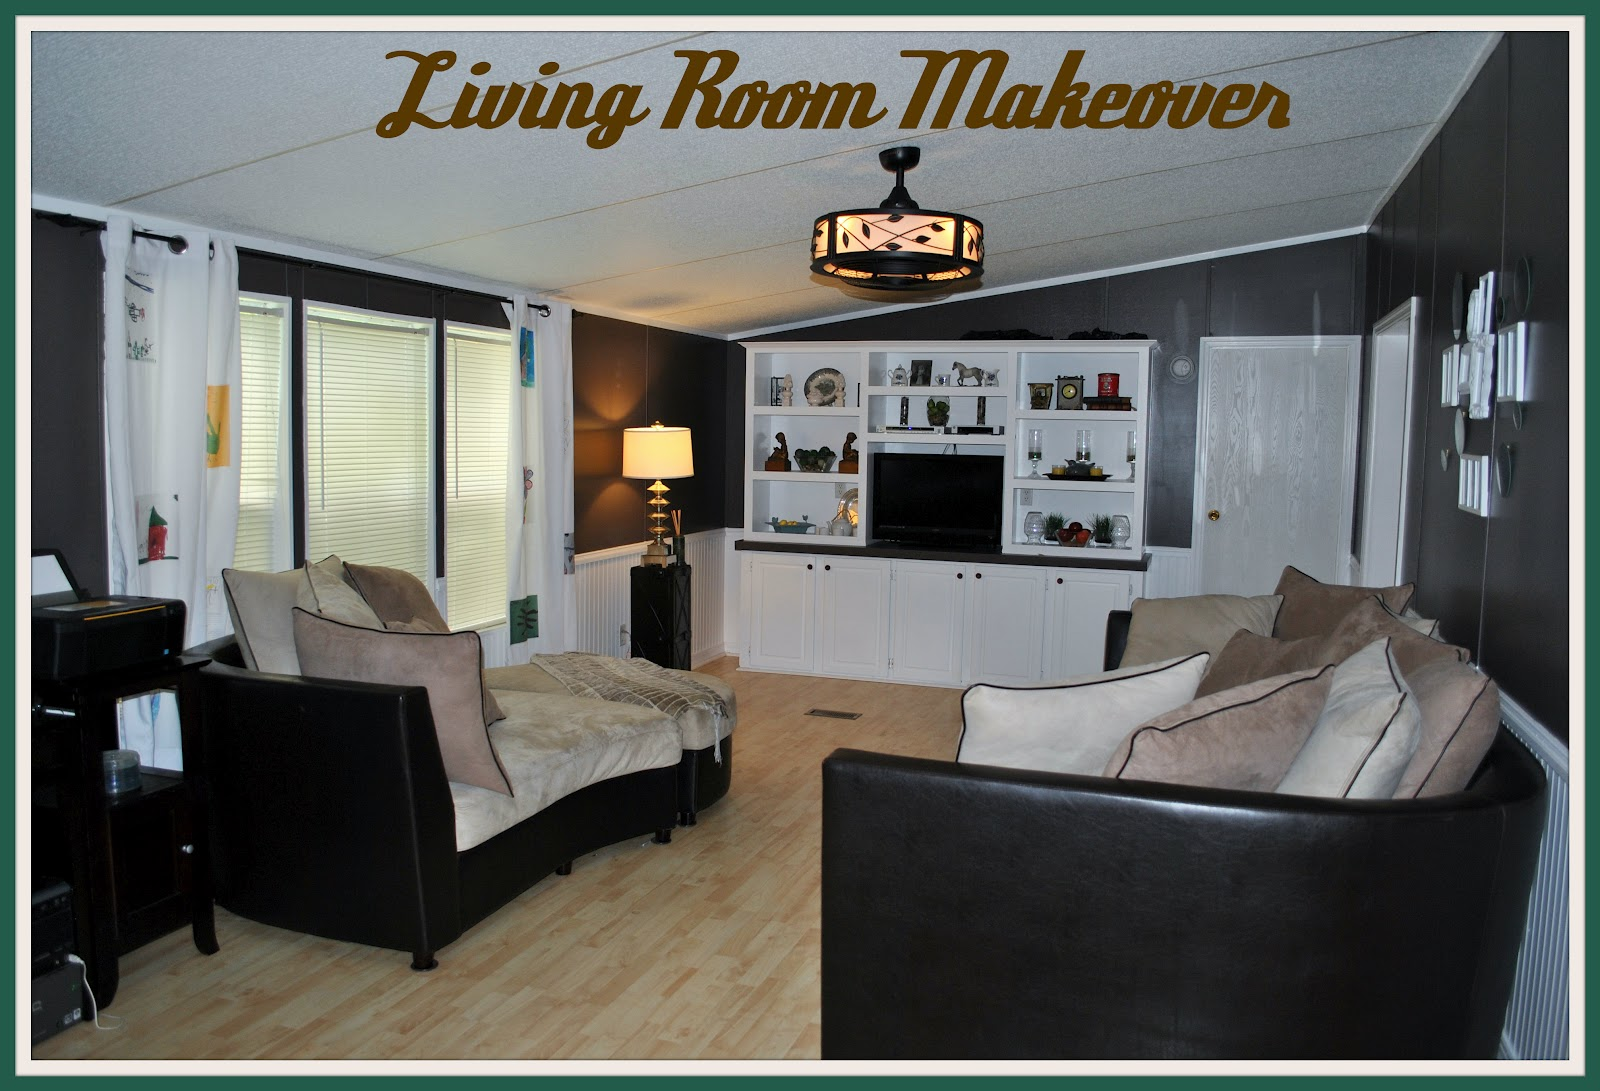 Life With 4 Boys Living Room Makeover Before And After